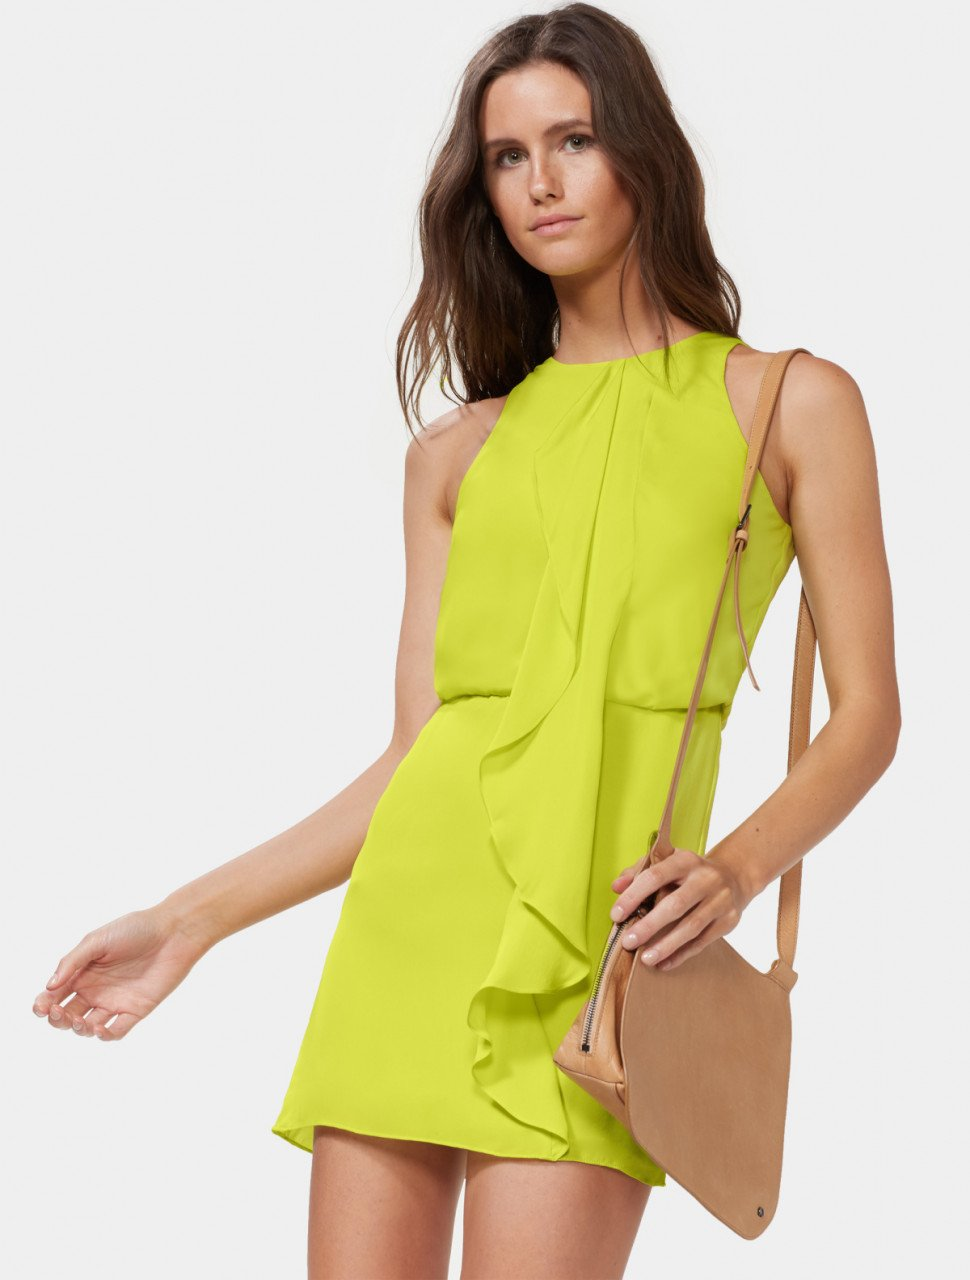 SLEEVELESS DRAPE FRONT DRESS